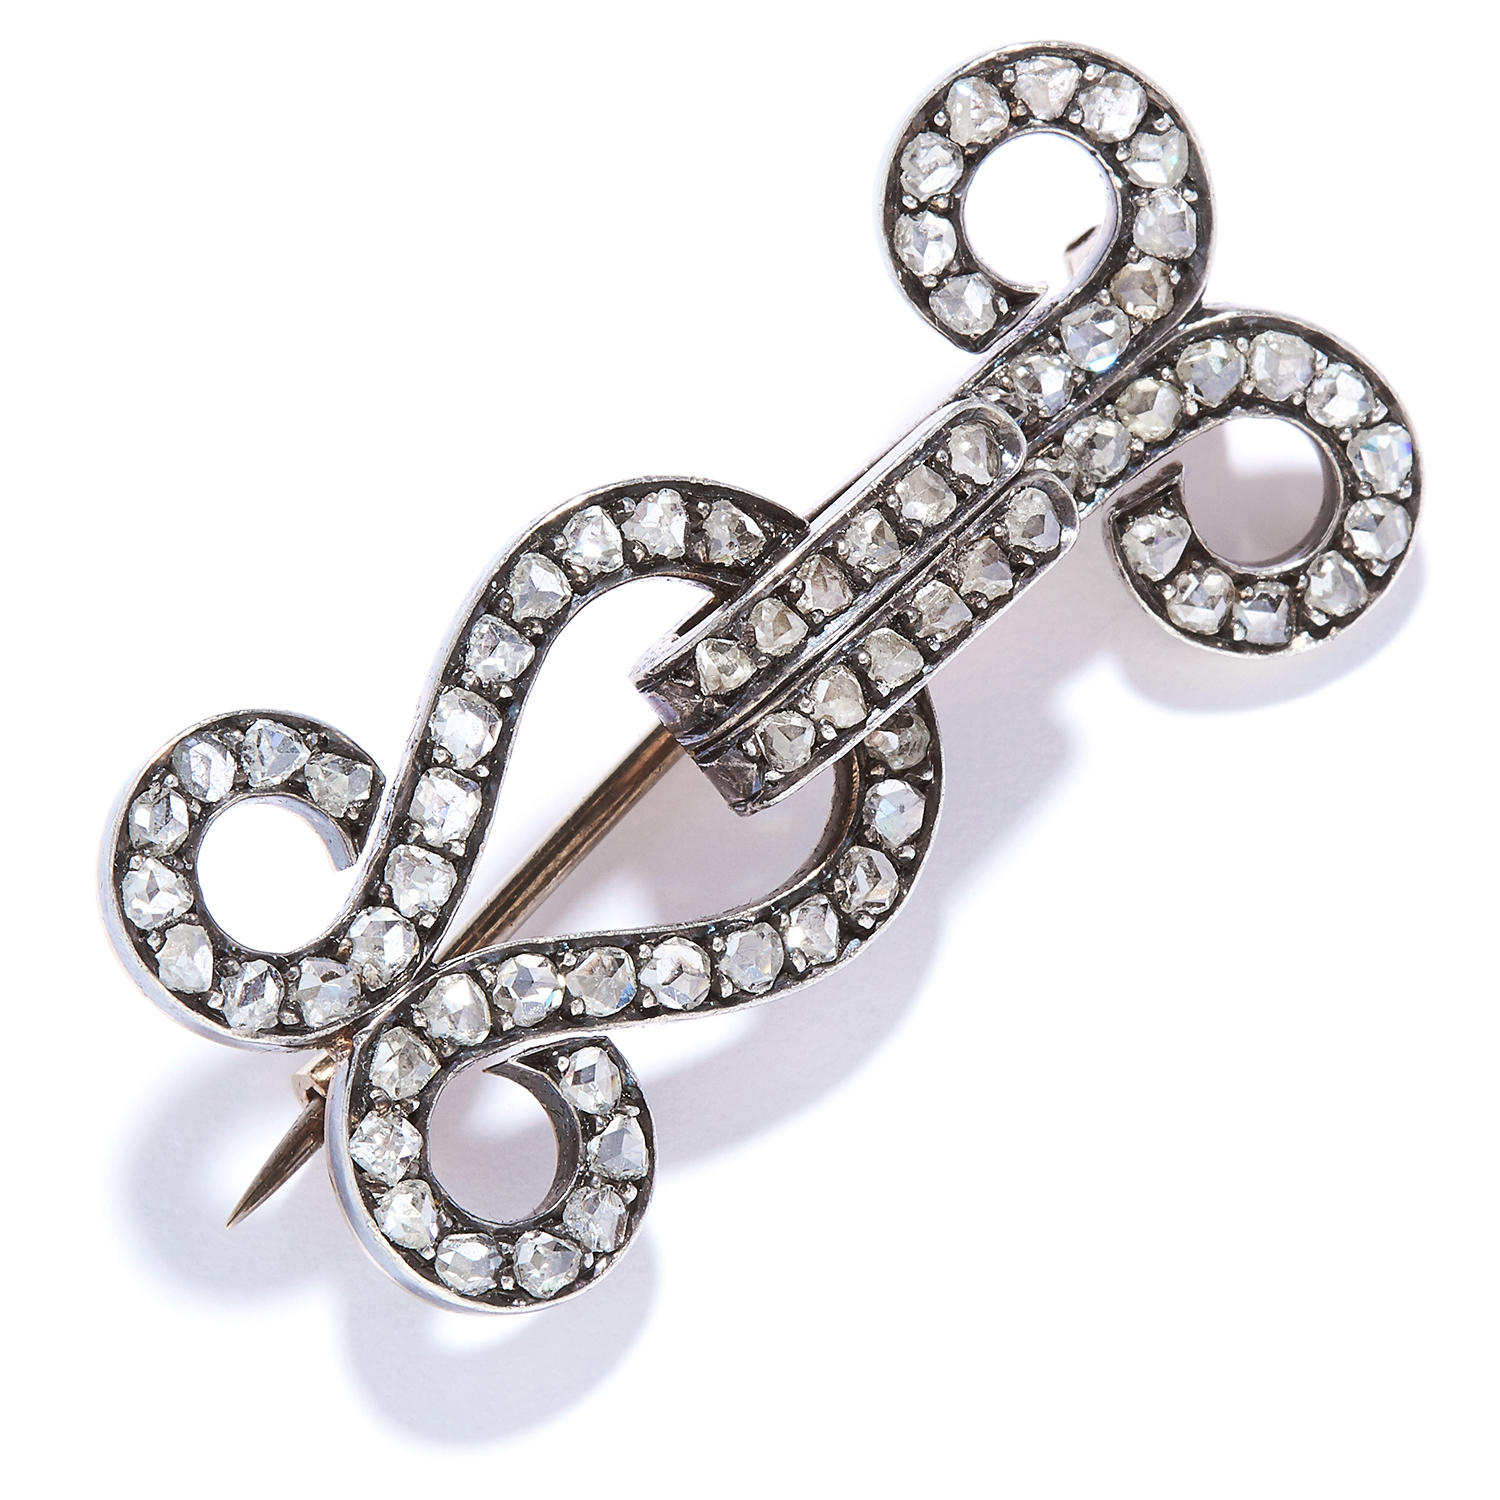 Los 38 - ANTIQUE HOOK AND EYE DIAMOND BROOCH in yellow gold, in hook and eye design, of Sewing interest,